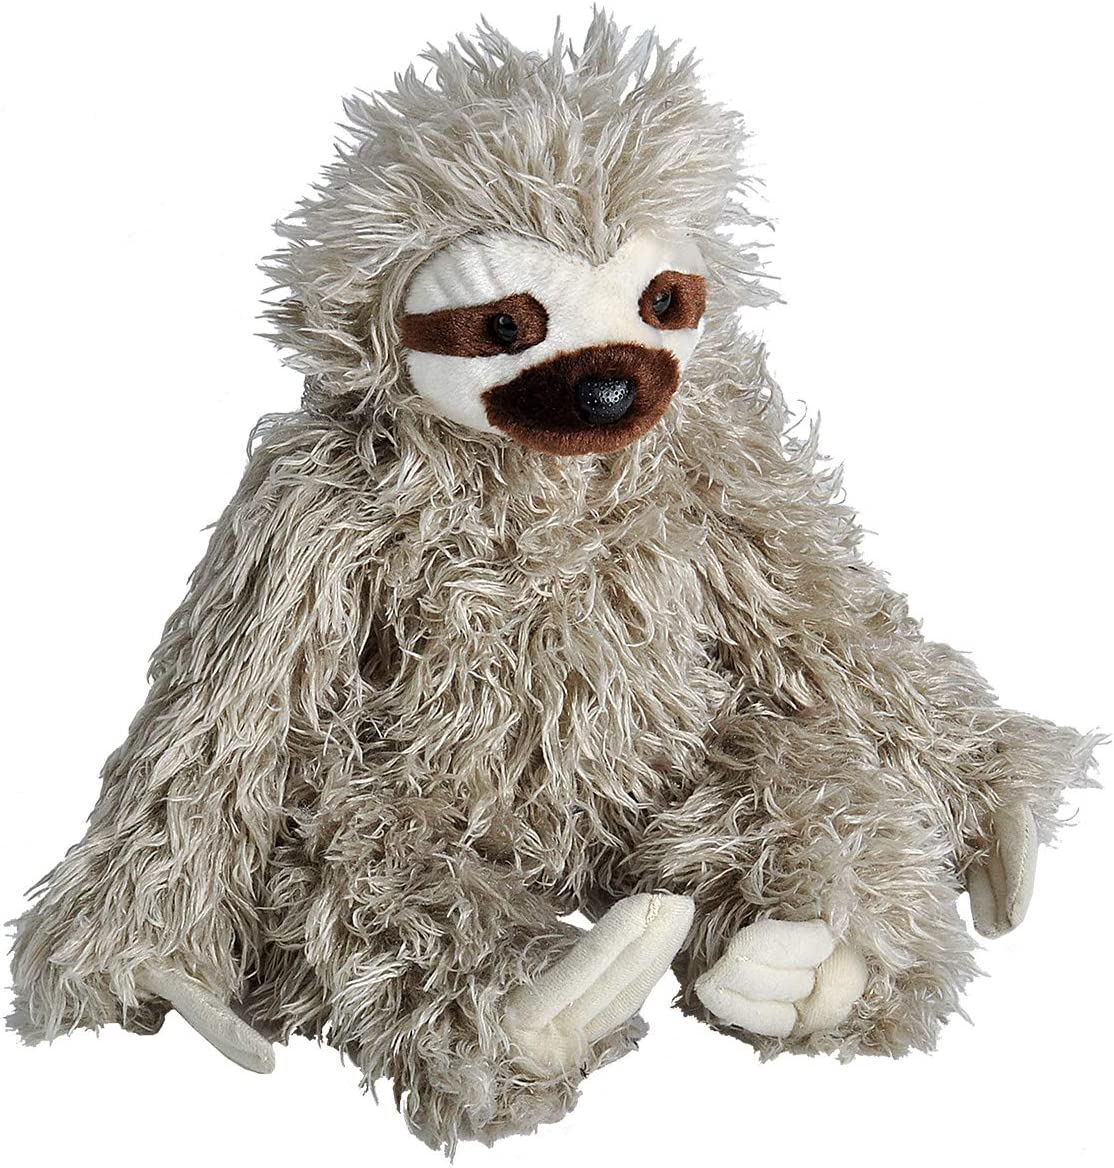 "B00BB7YETE Wild Republic Cuddlekin Three Toed Sloth 12"" Plush, Cuddlekins (12257) 71uT6CnLdcL"